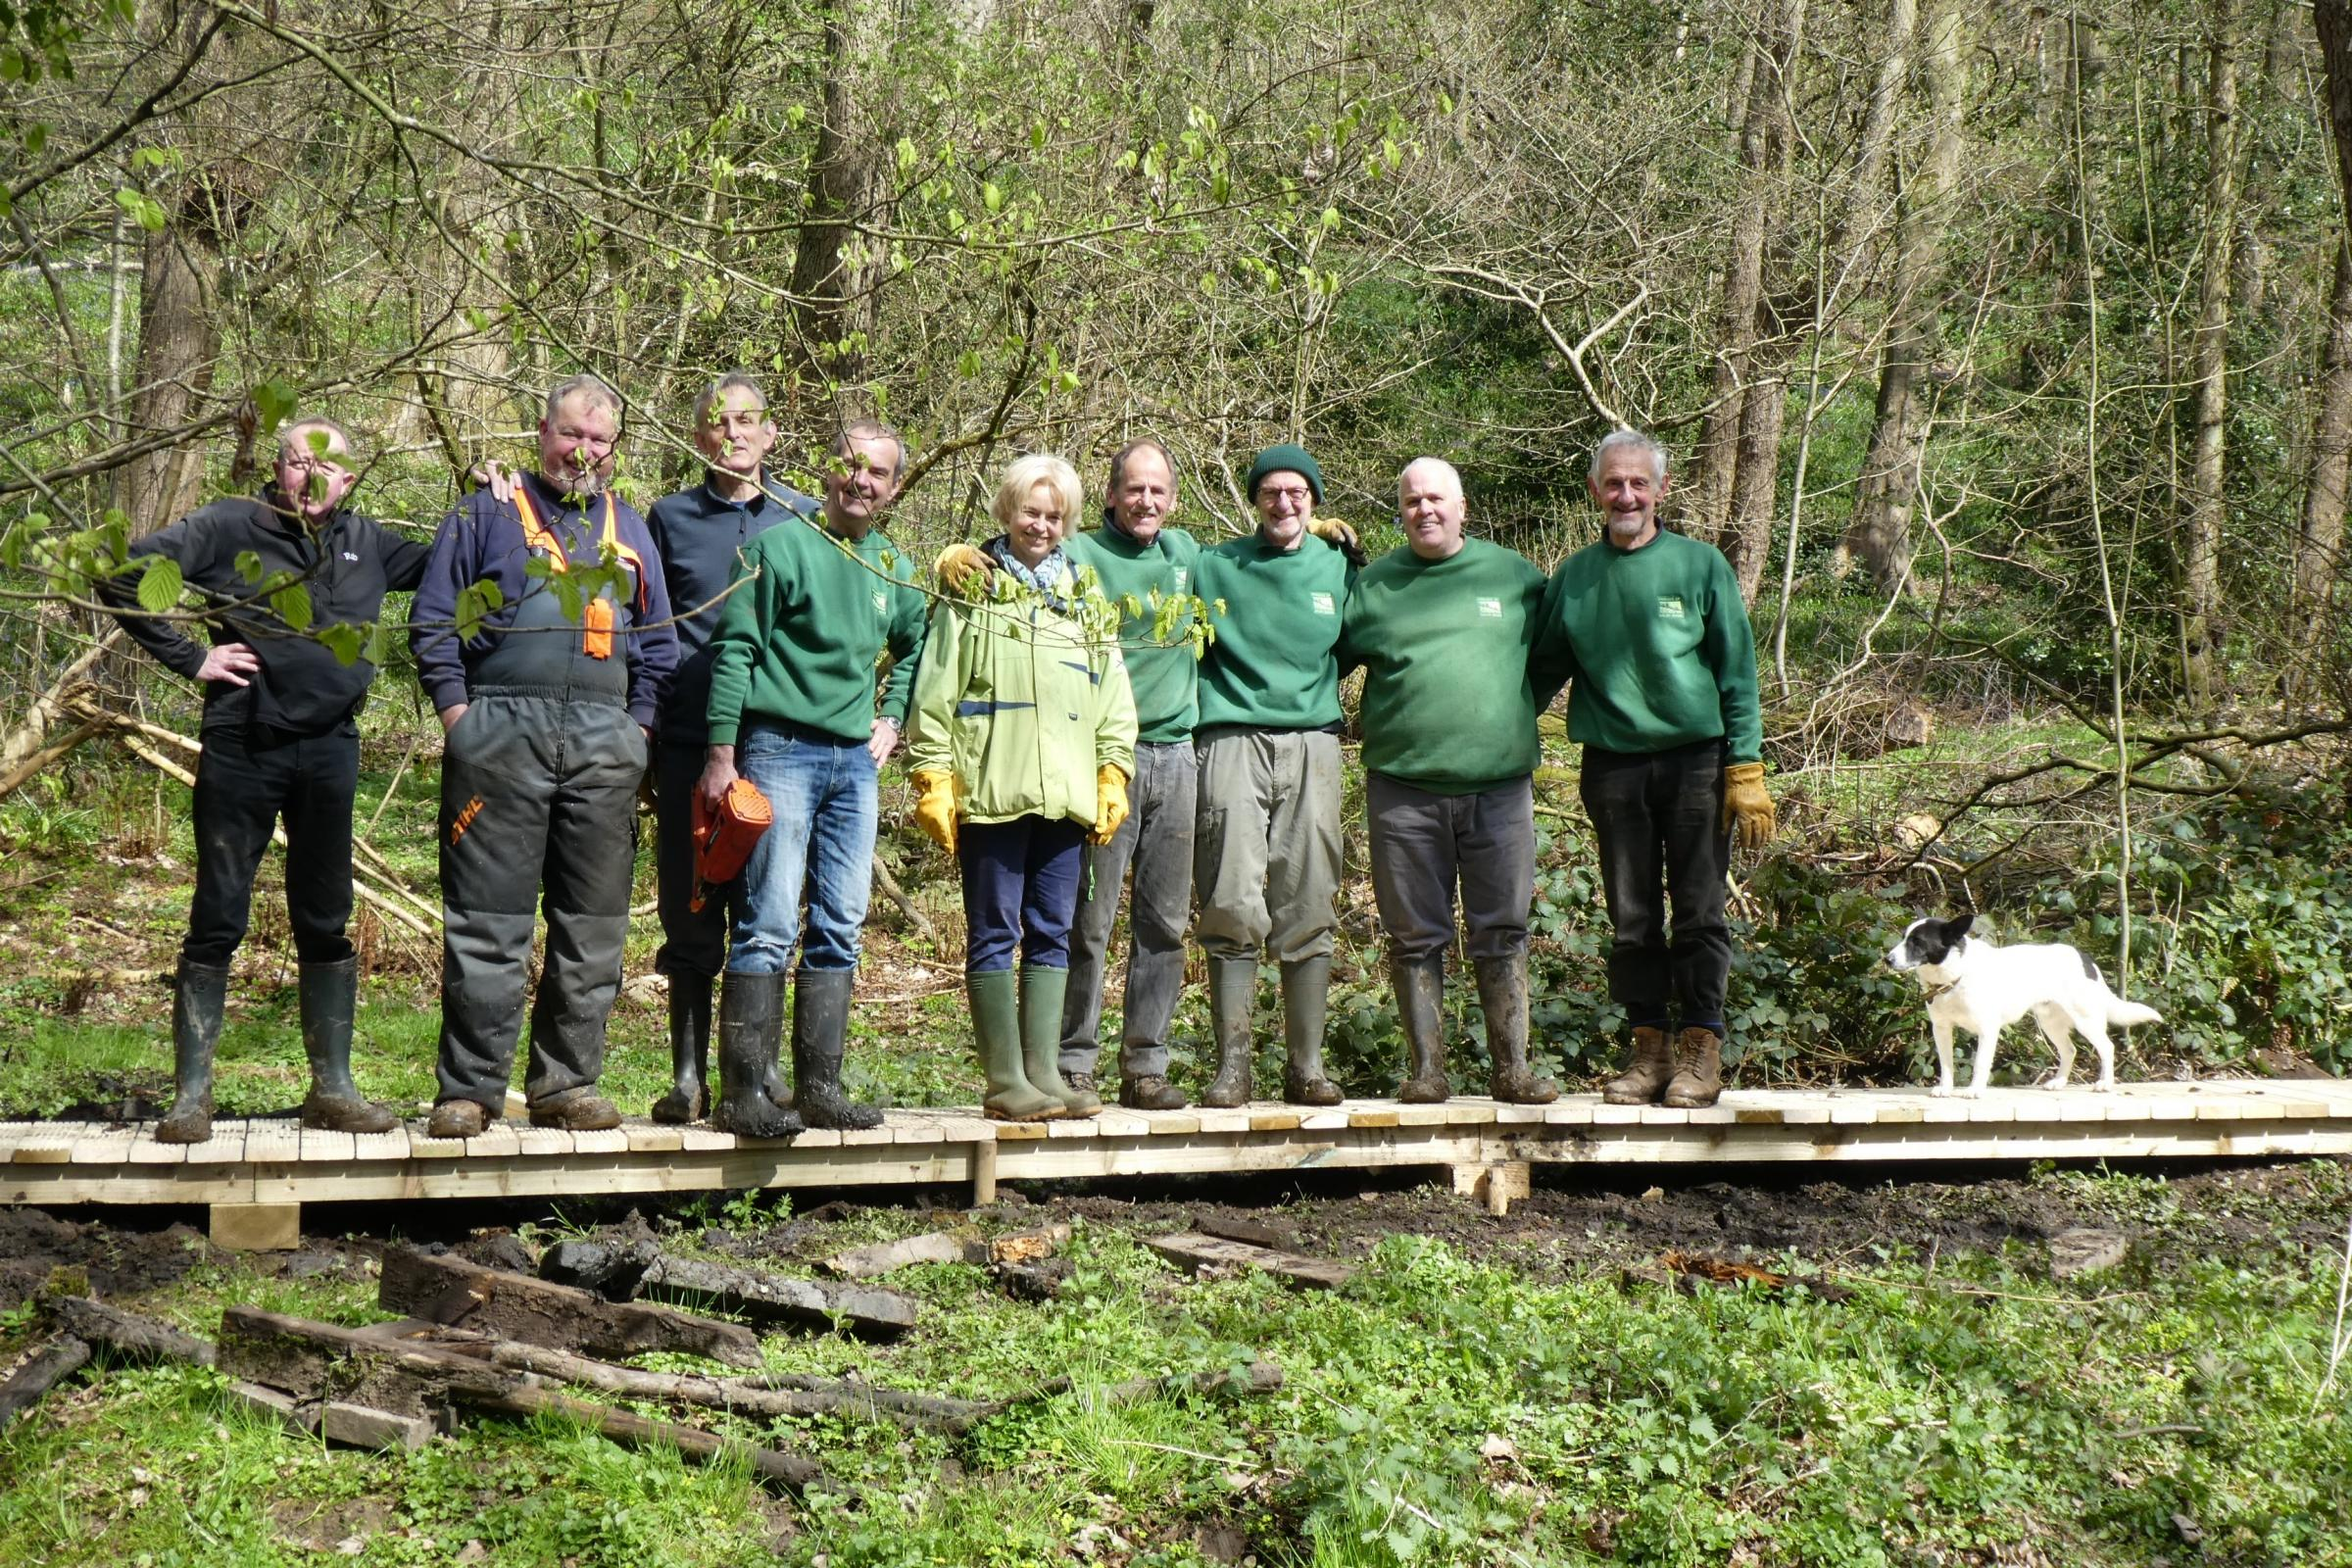 Friends of Ilkley Moor volunteers are pictured after completing a section of the boardwalk